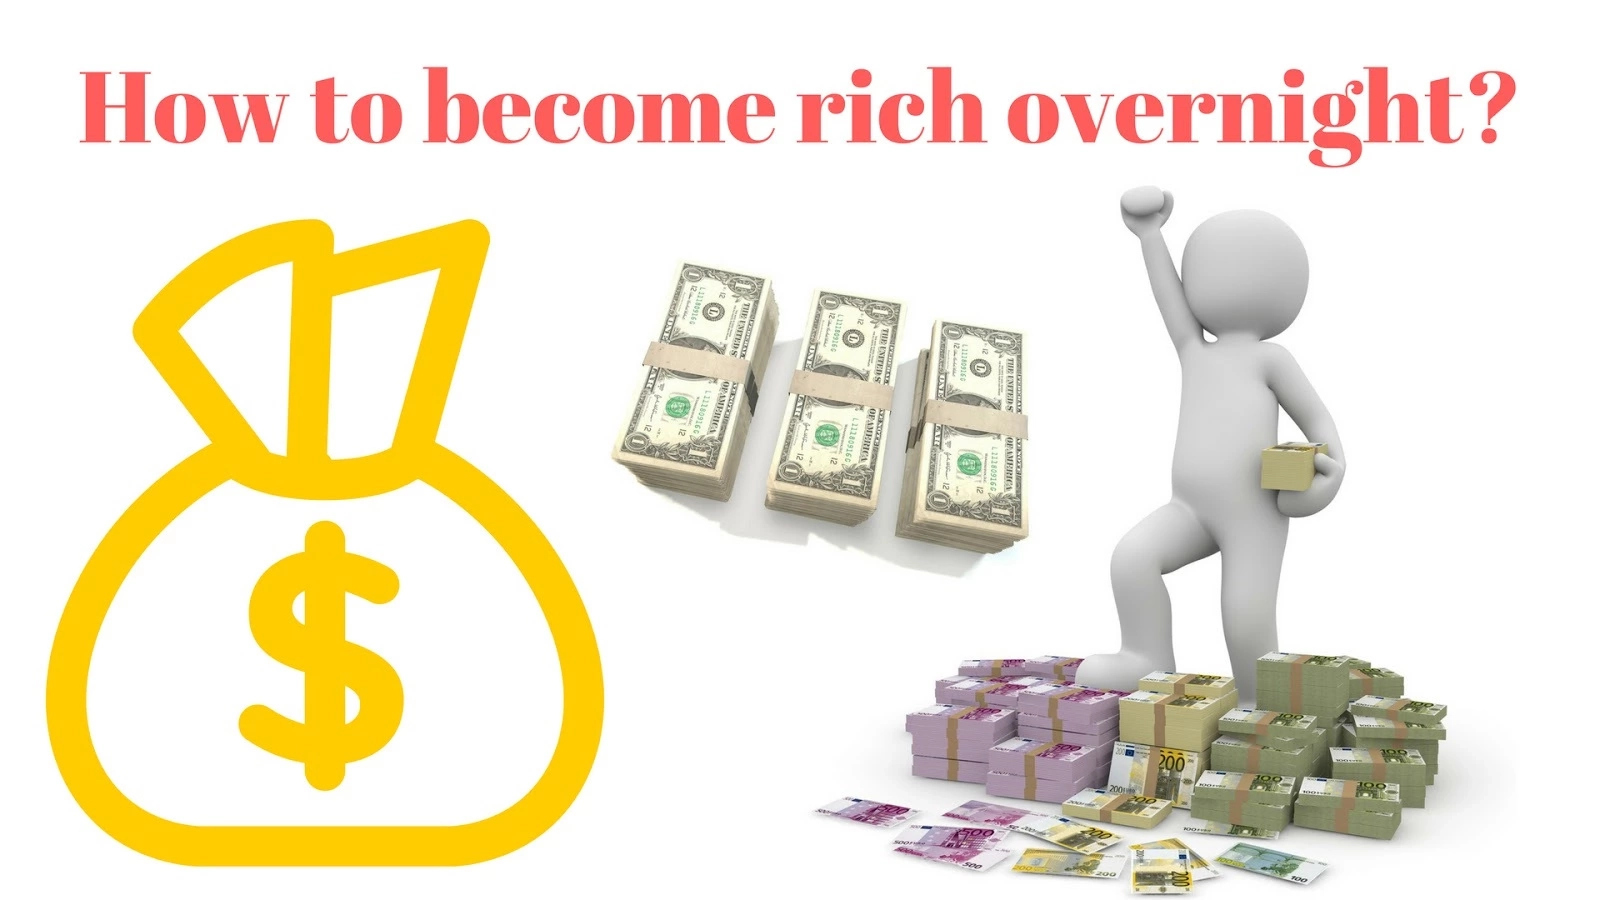 How to Become Rich Overnight